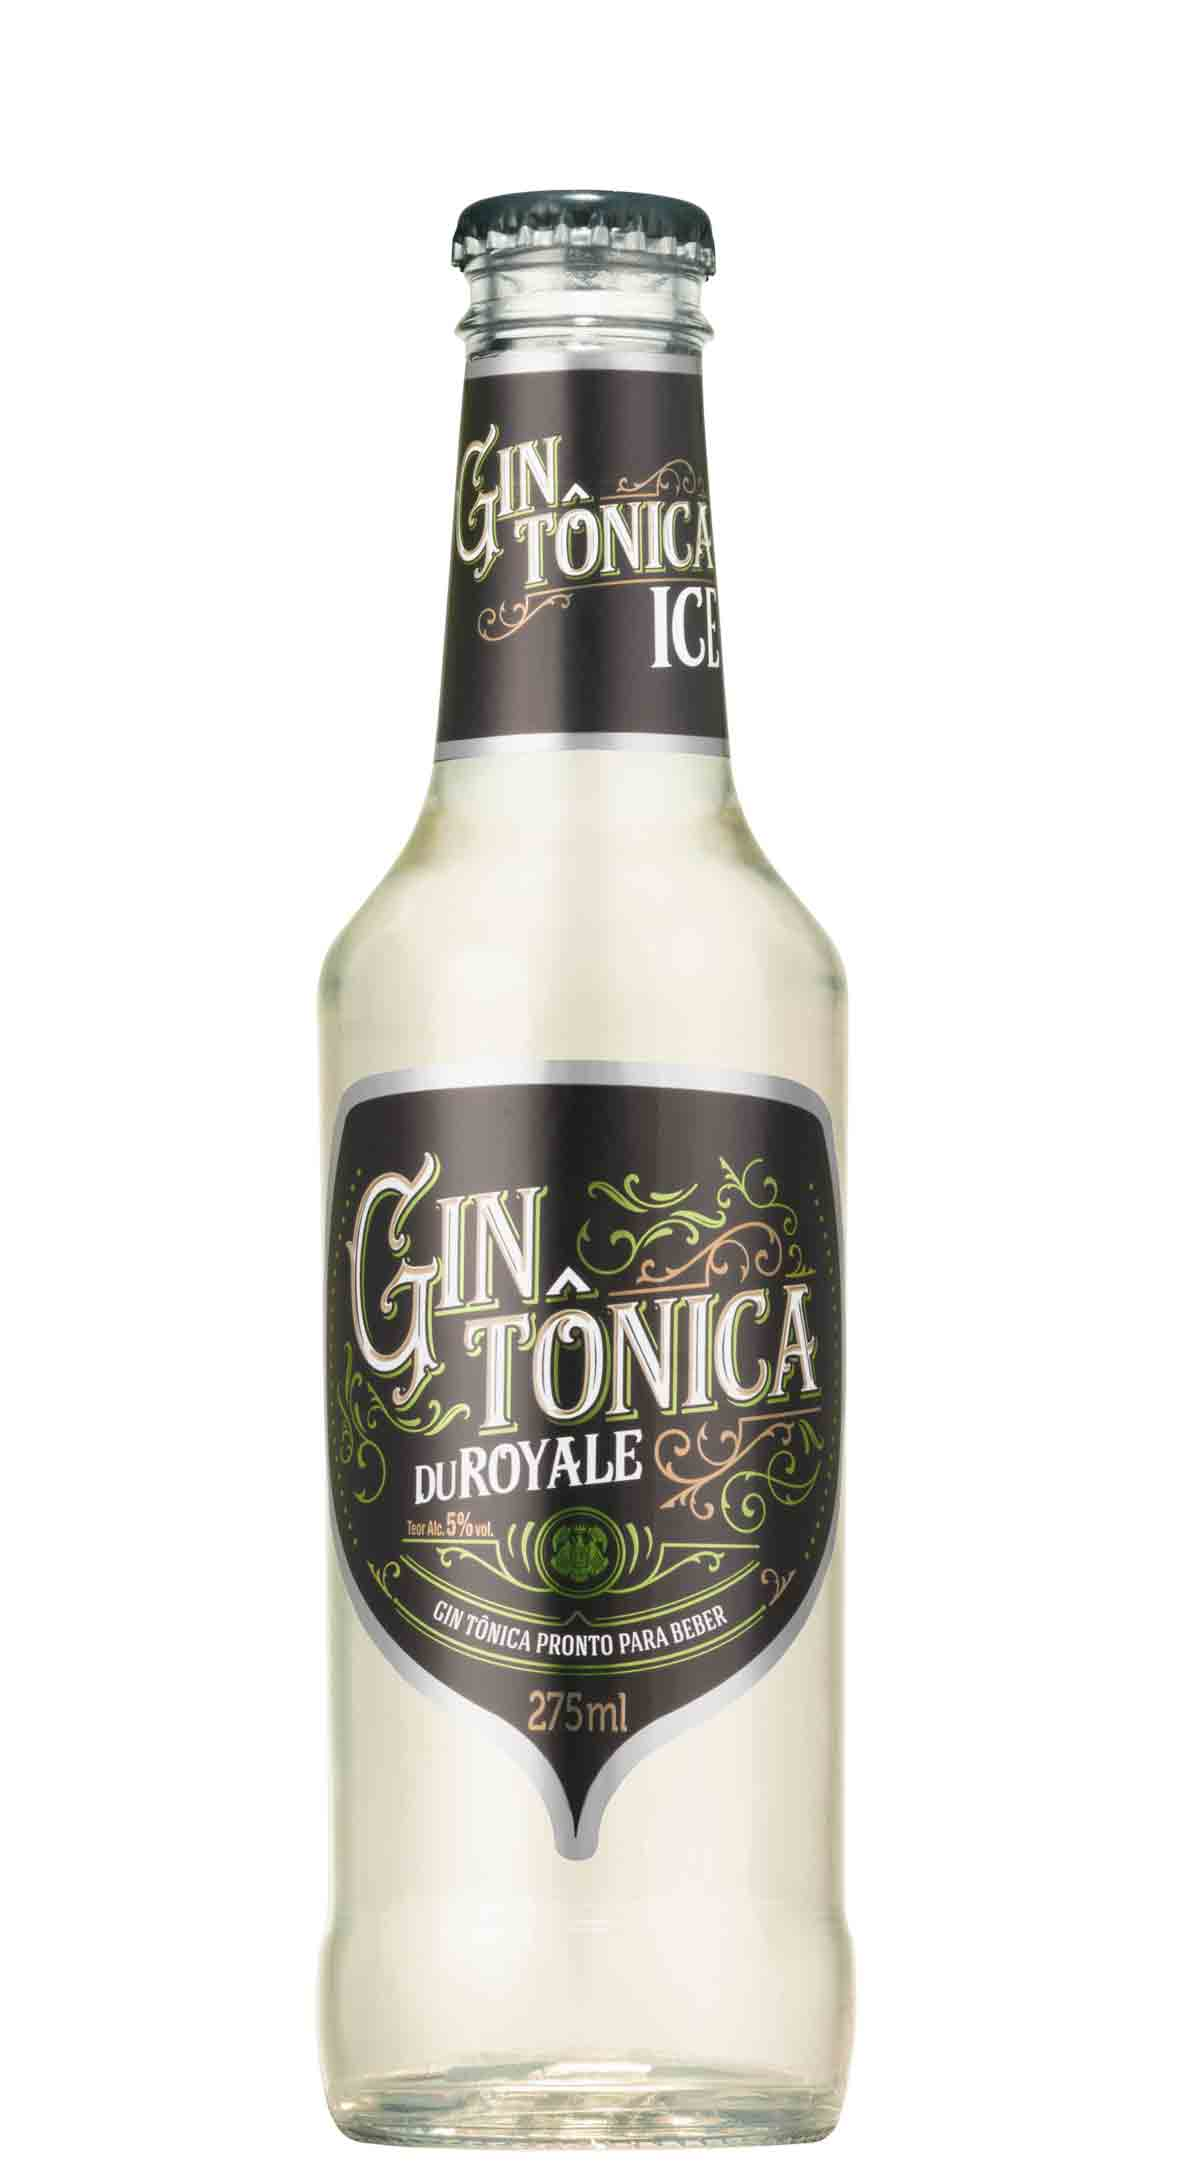 7896008112233 - GIN TONICA DU ROYALE 275ML L.N.